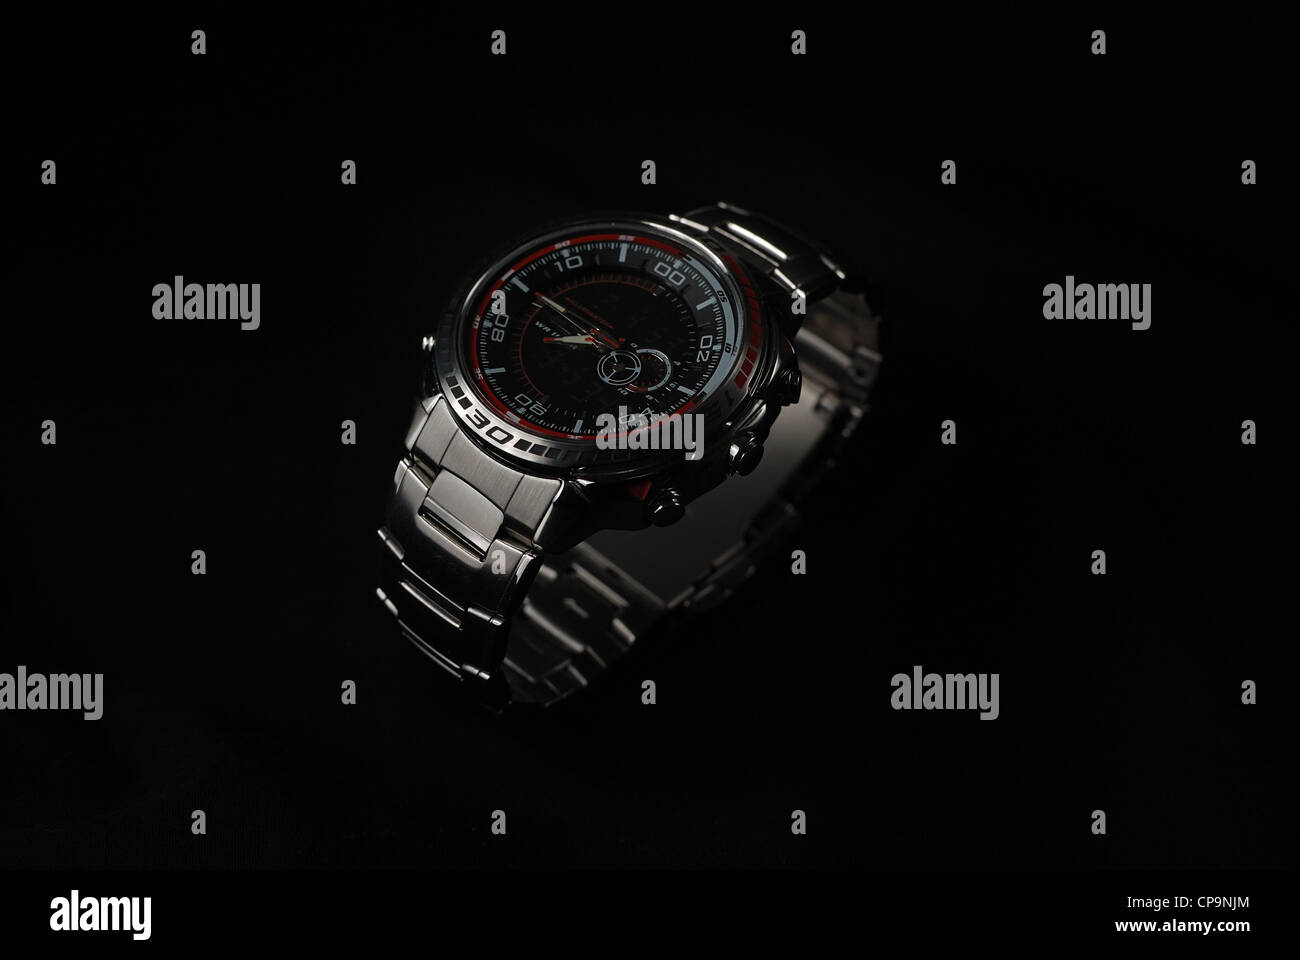 Close up of a sports watch - Stock Image